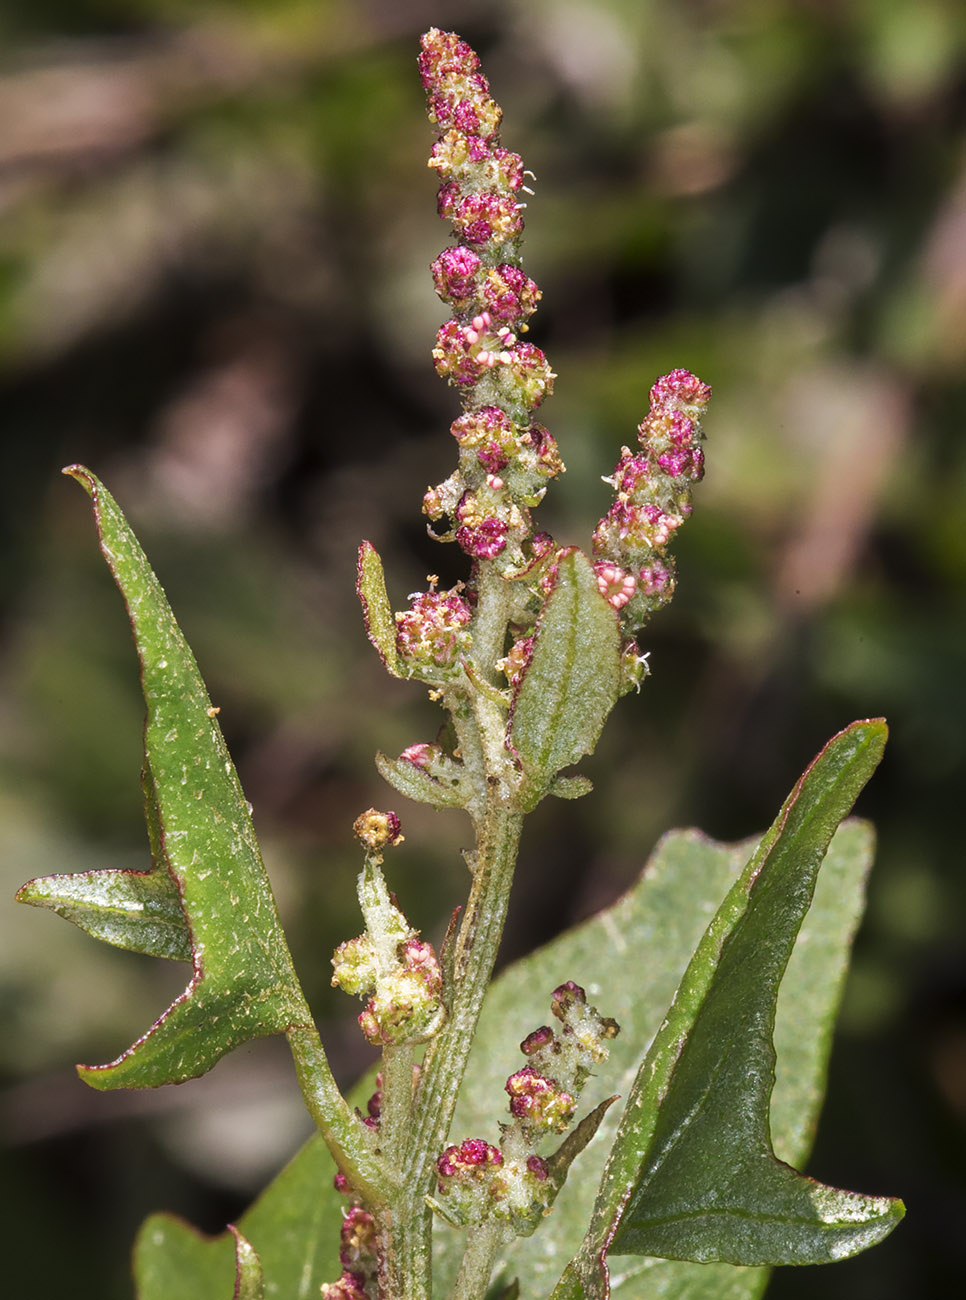 Spear-Leaved Orache, Atriplex prostrata.  Roadside near Downe, 23 August 2014.